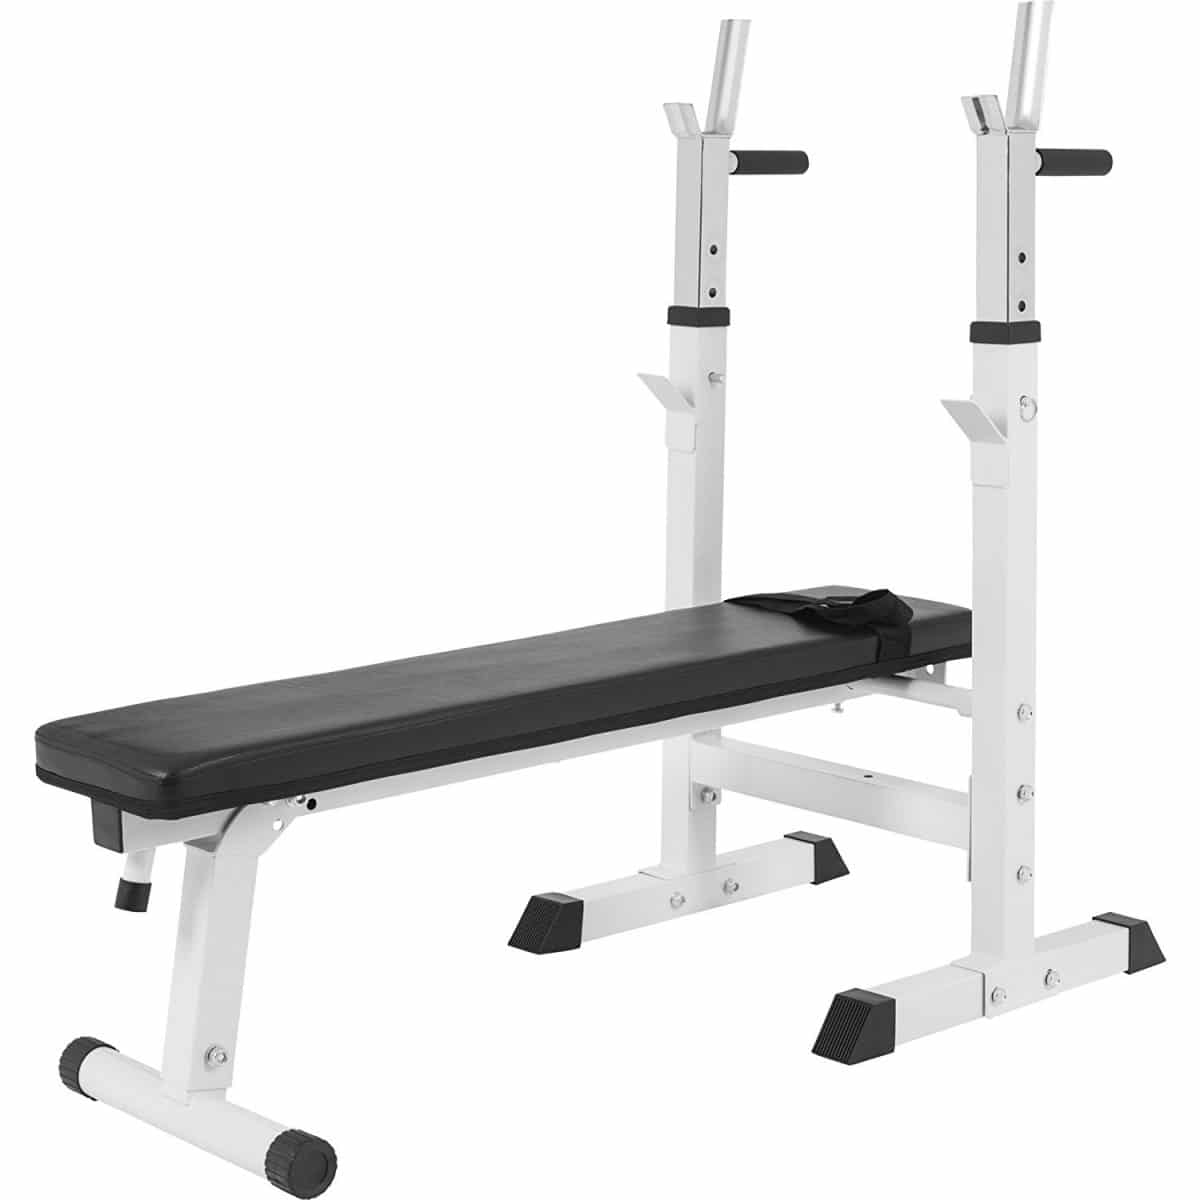 Banc de musculation Gorilla Sports 100118